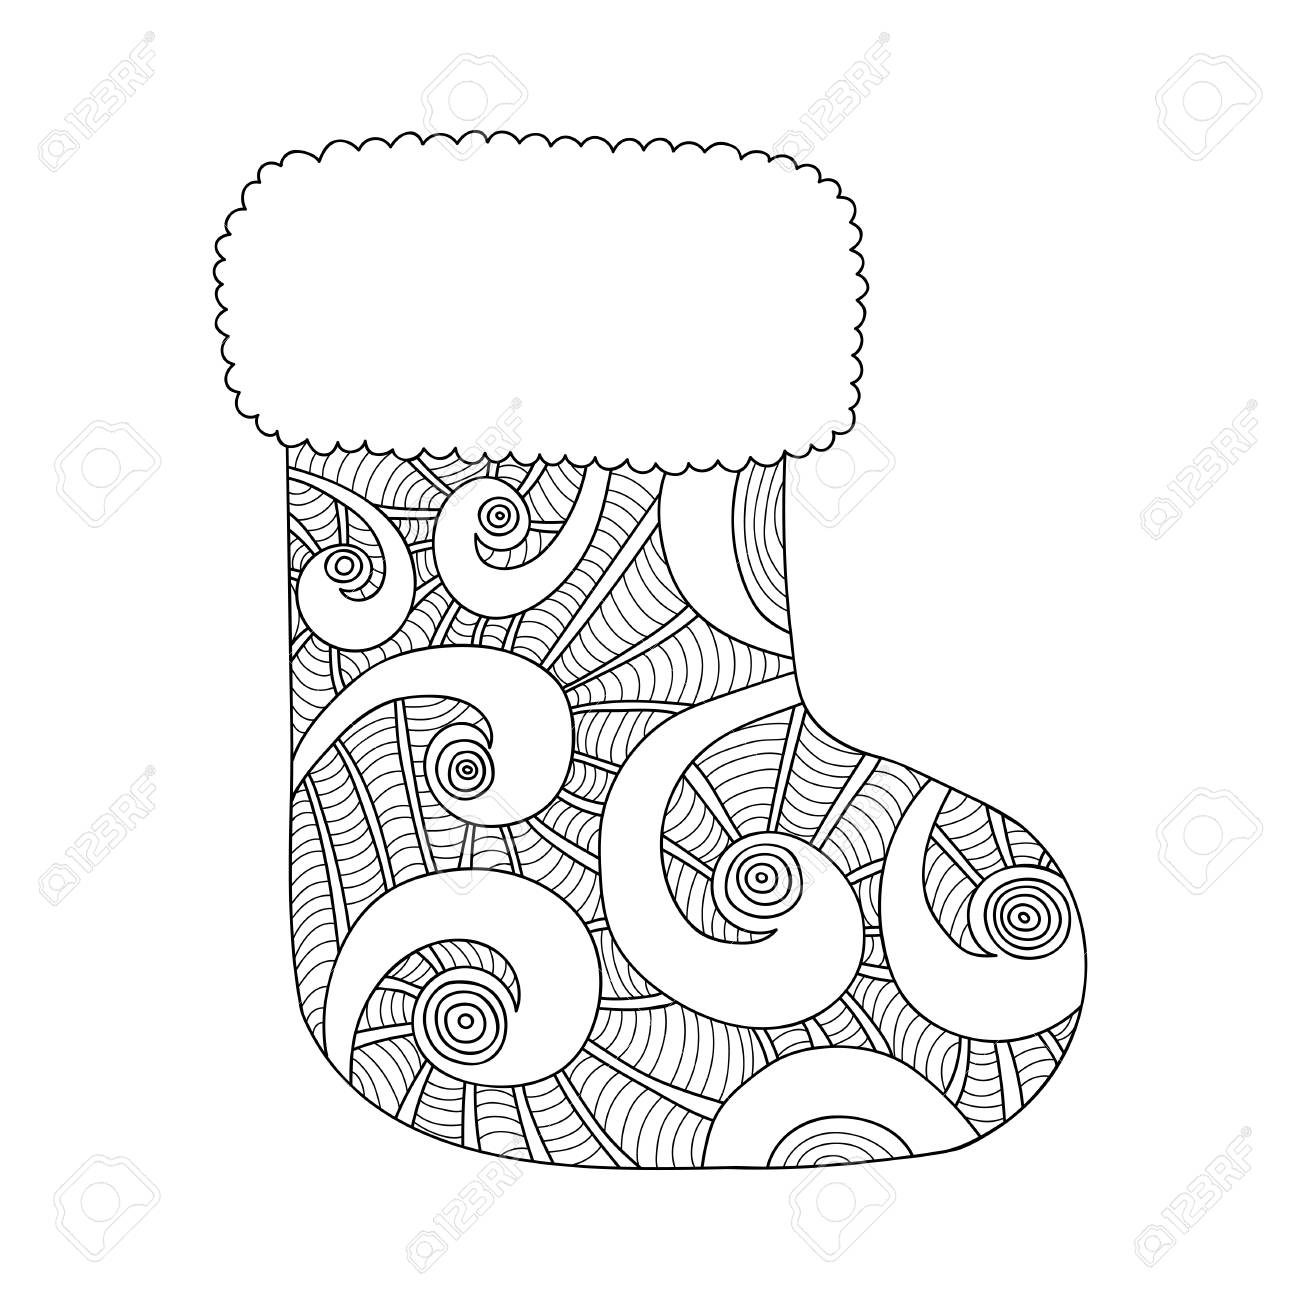 Christmas Stocking For Gifts Black And White Illustration For